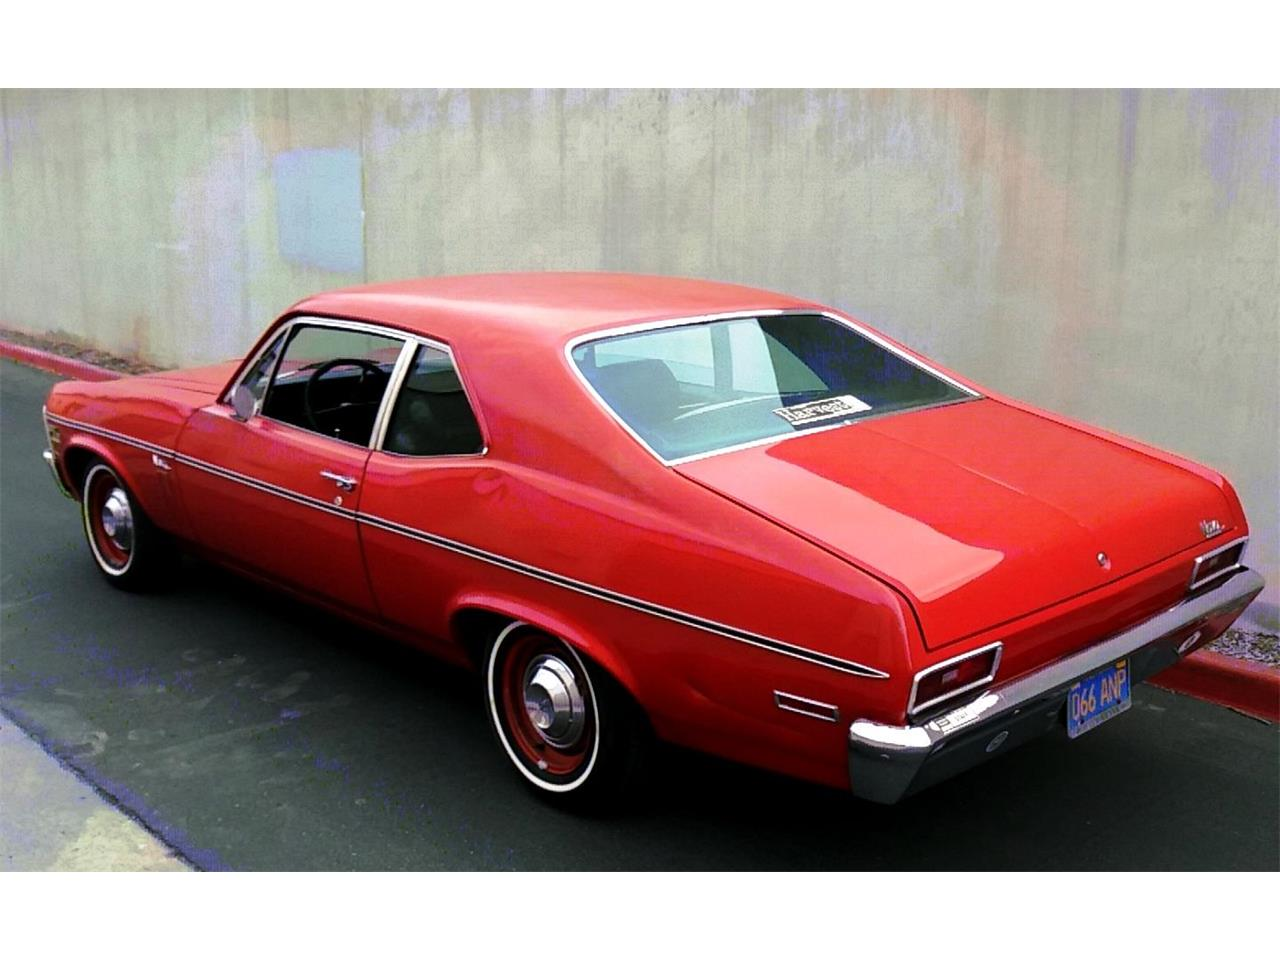 Large Picture of Classic '70 Chevrolet Nova located in Huntington Beach California Offered by Bring A Trailer - QR0C